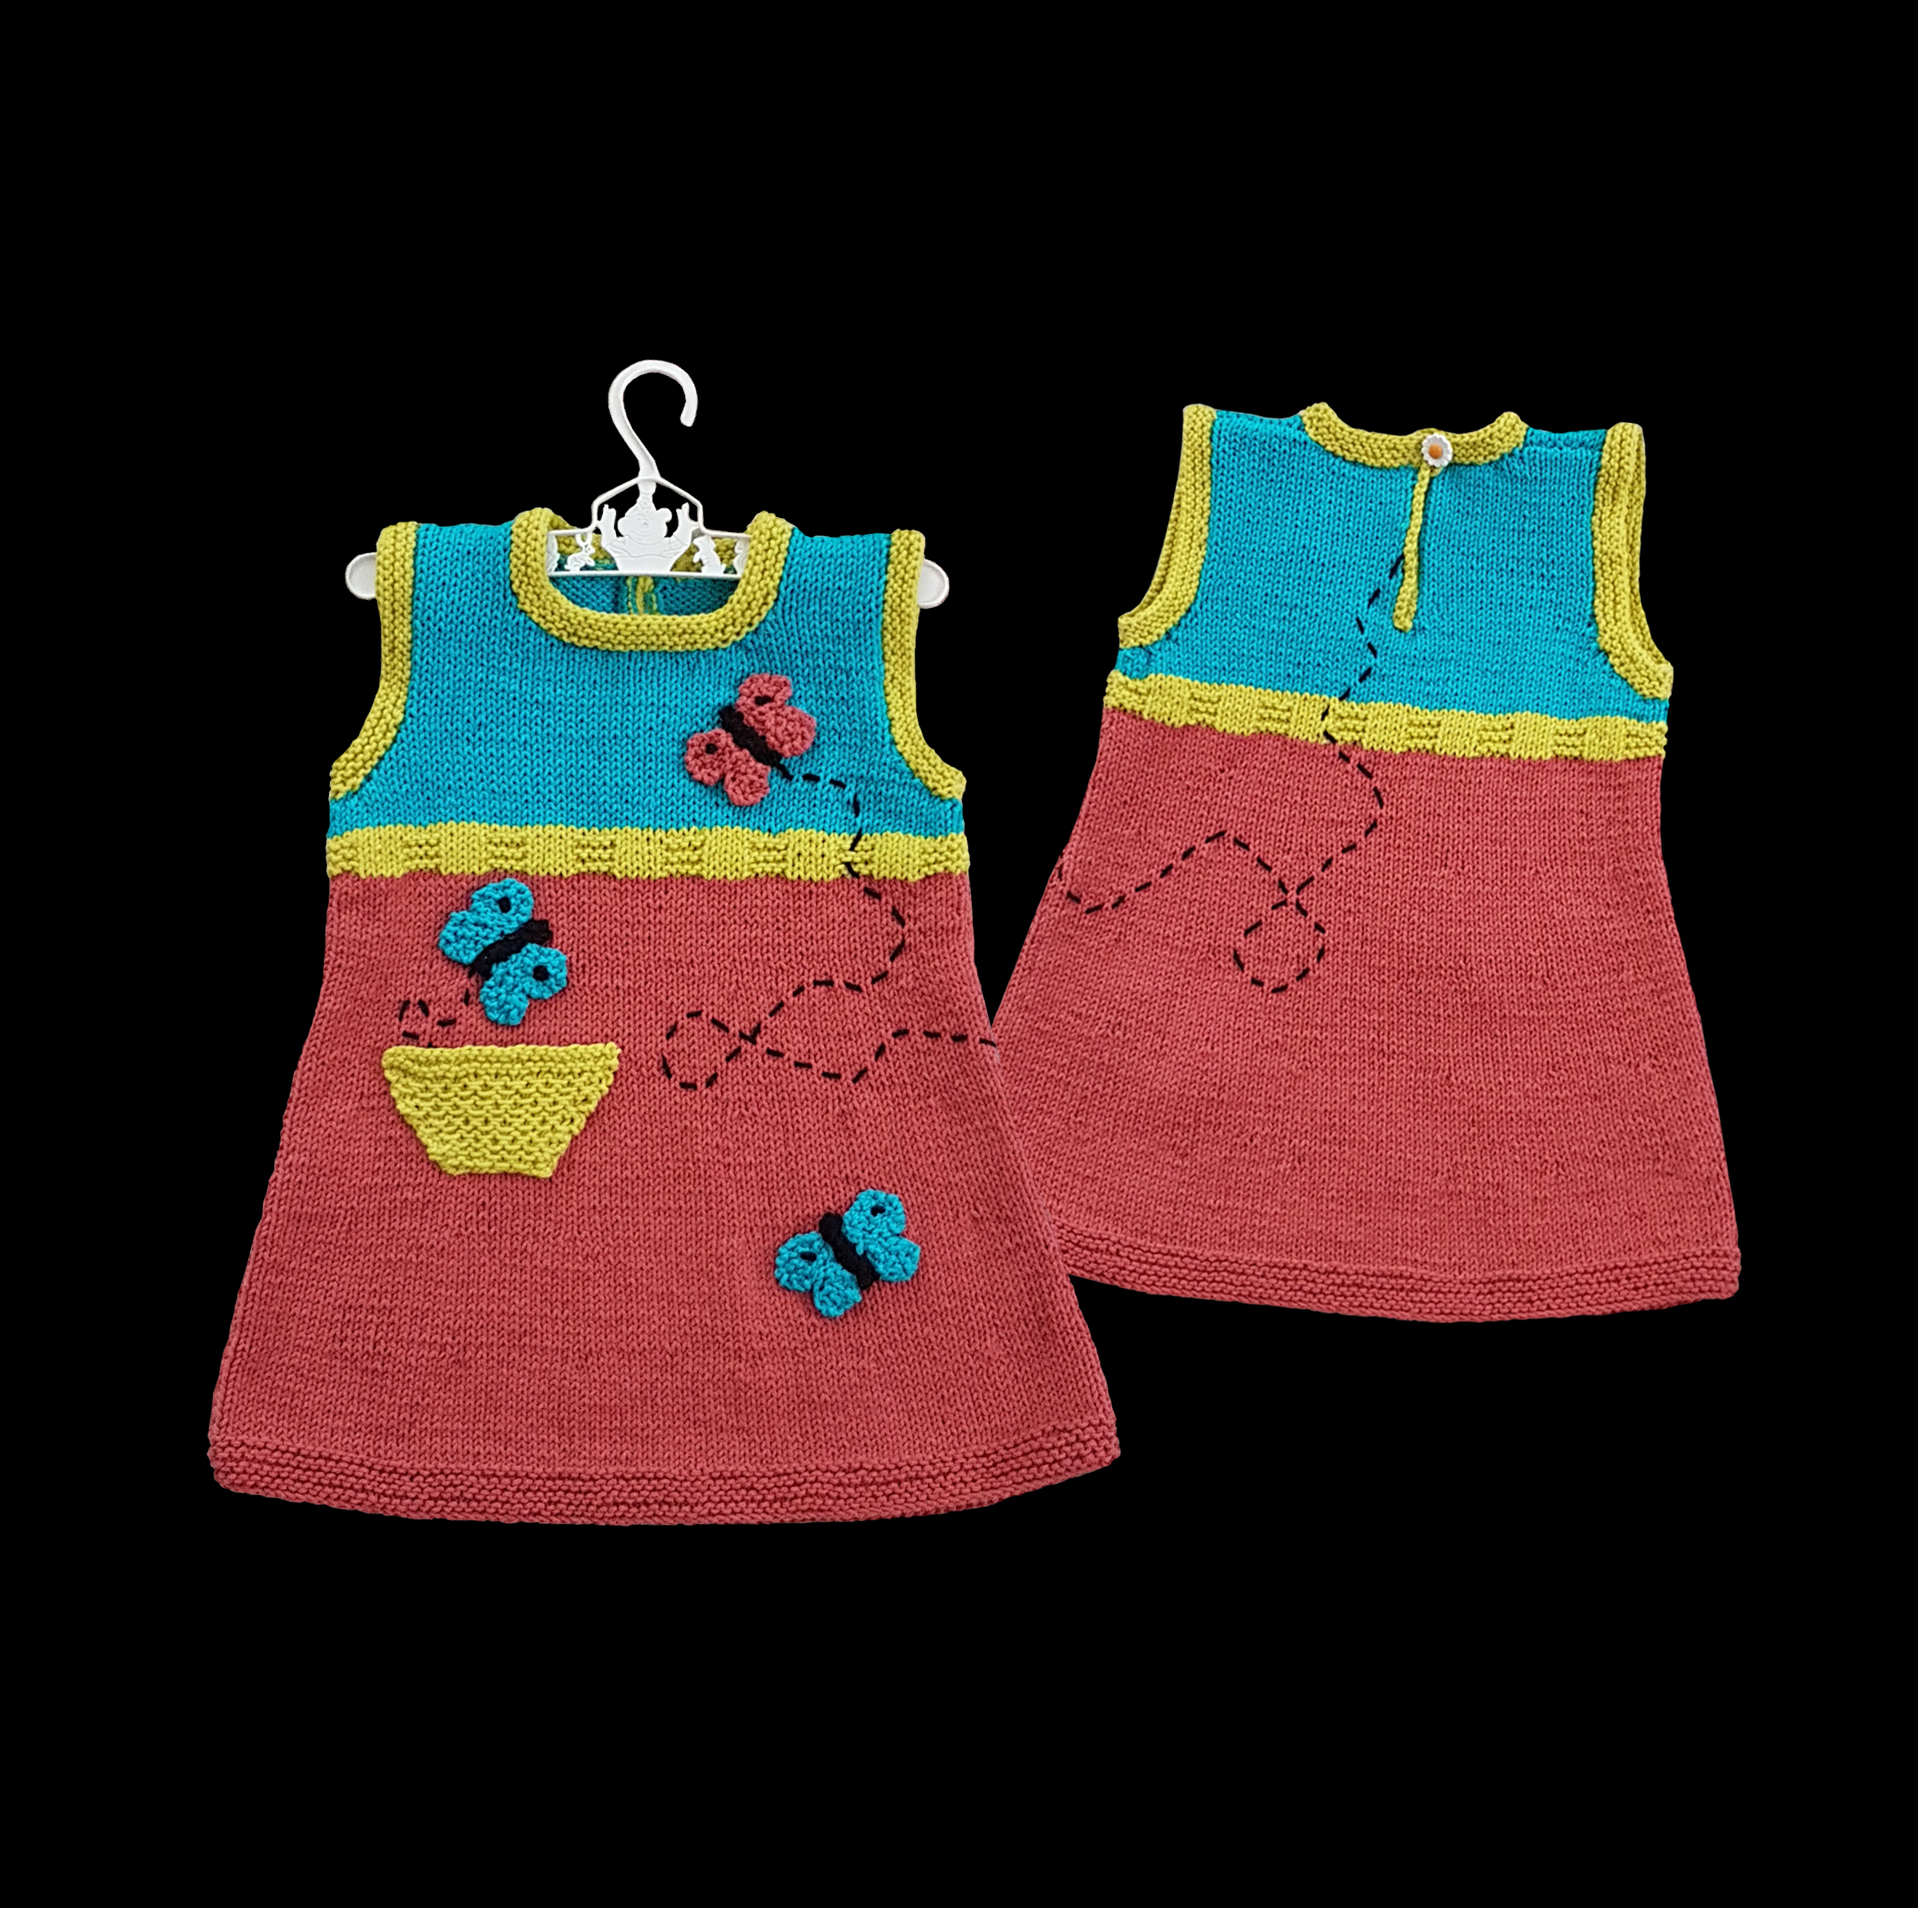 Butterfly Tunic Dress (1-5 year old) image